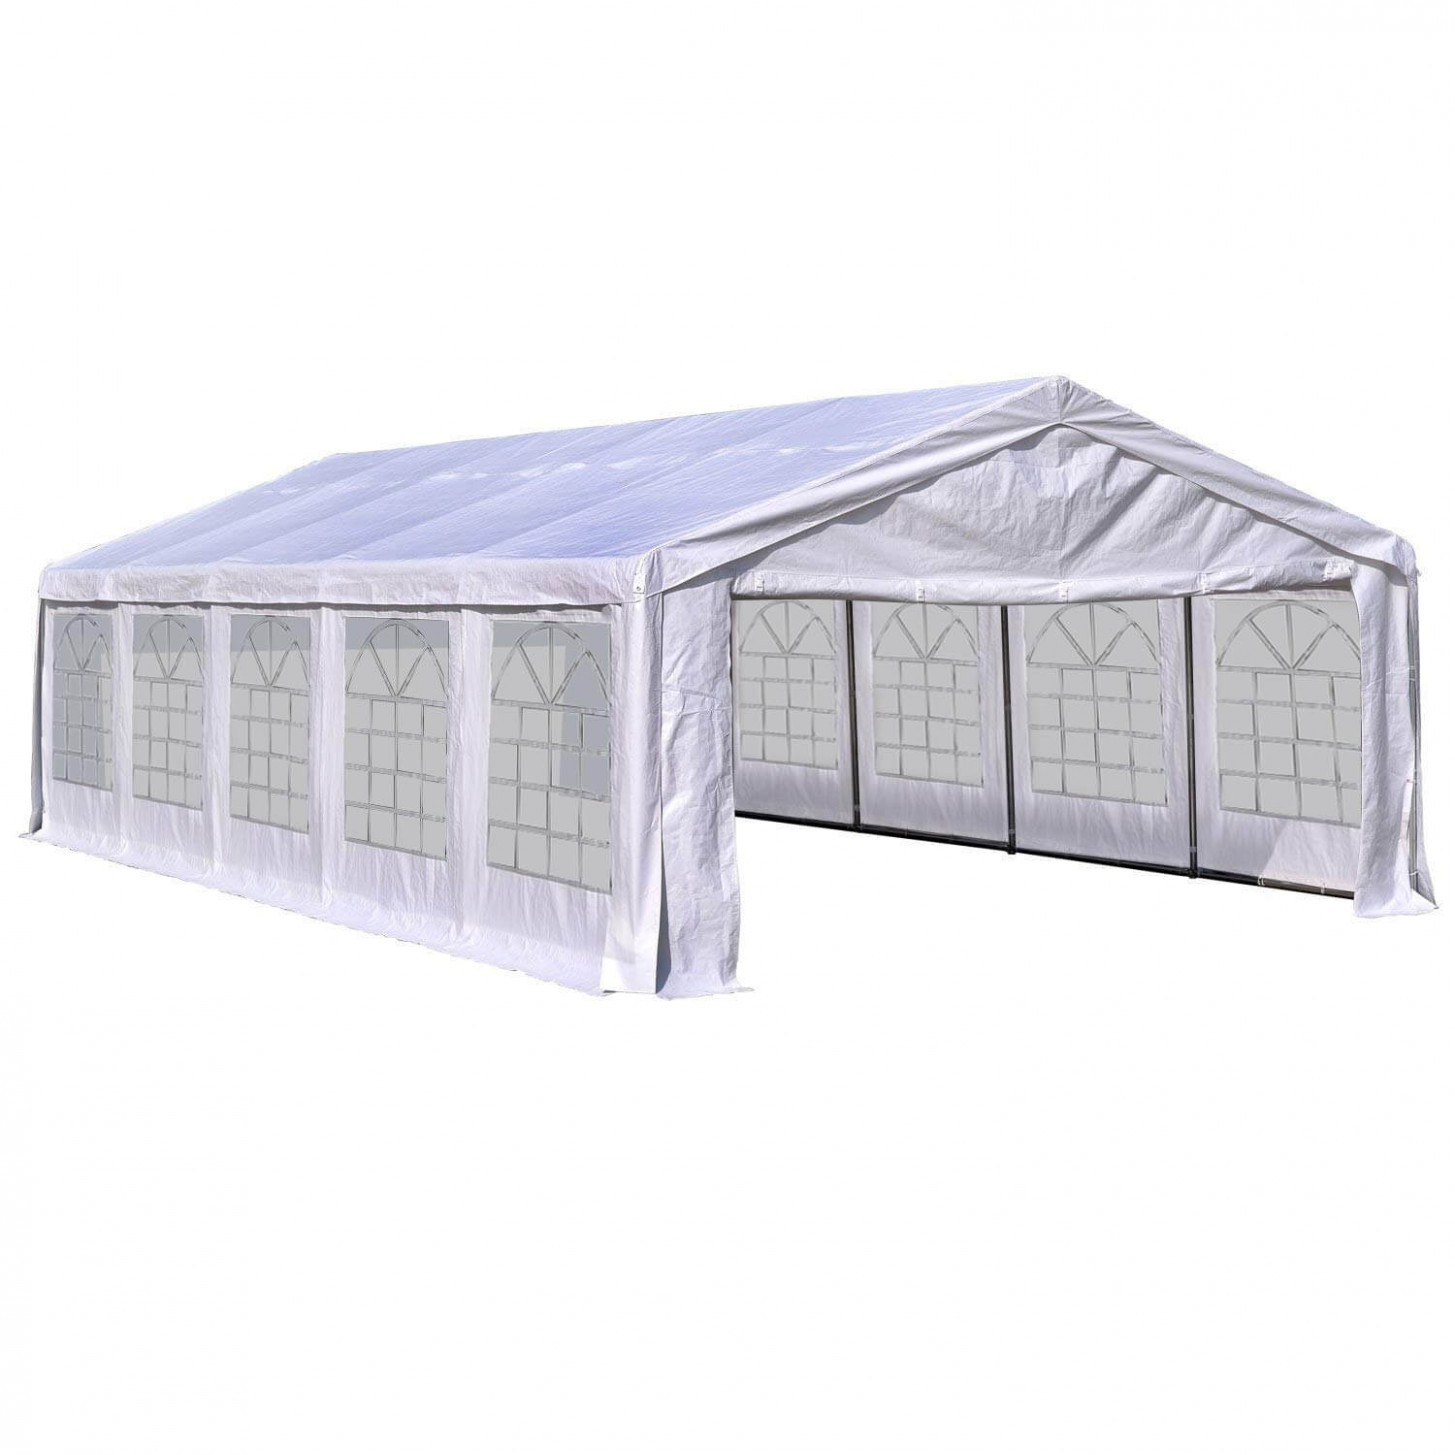 Outsunny 9'W X 9'D Outdoor Carport Canopy Party Tent With Sidewalls White Carport Canopy Height